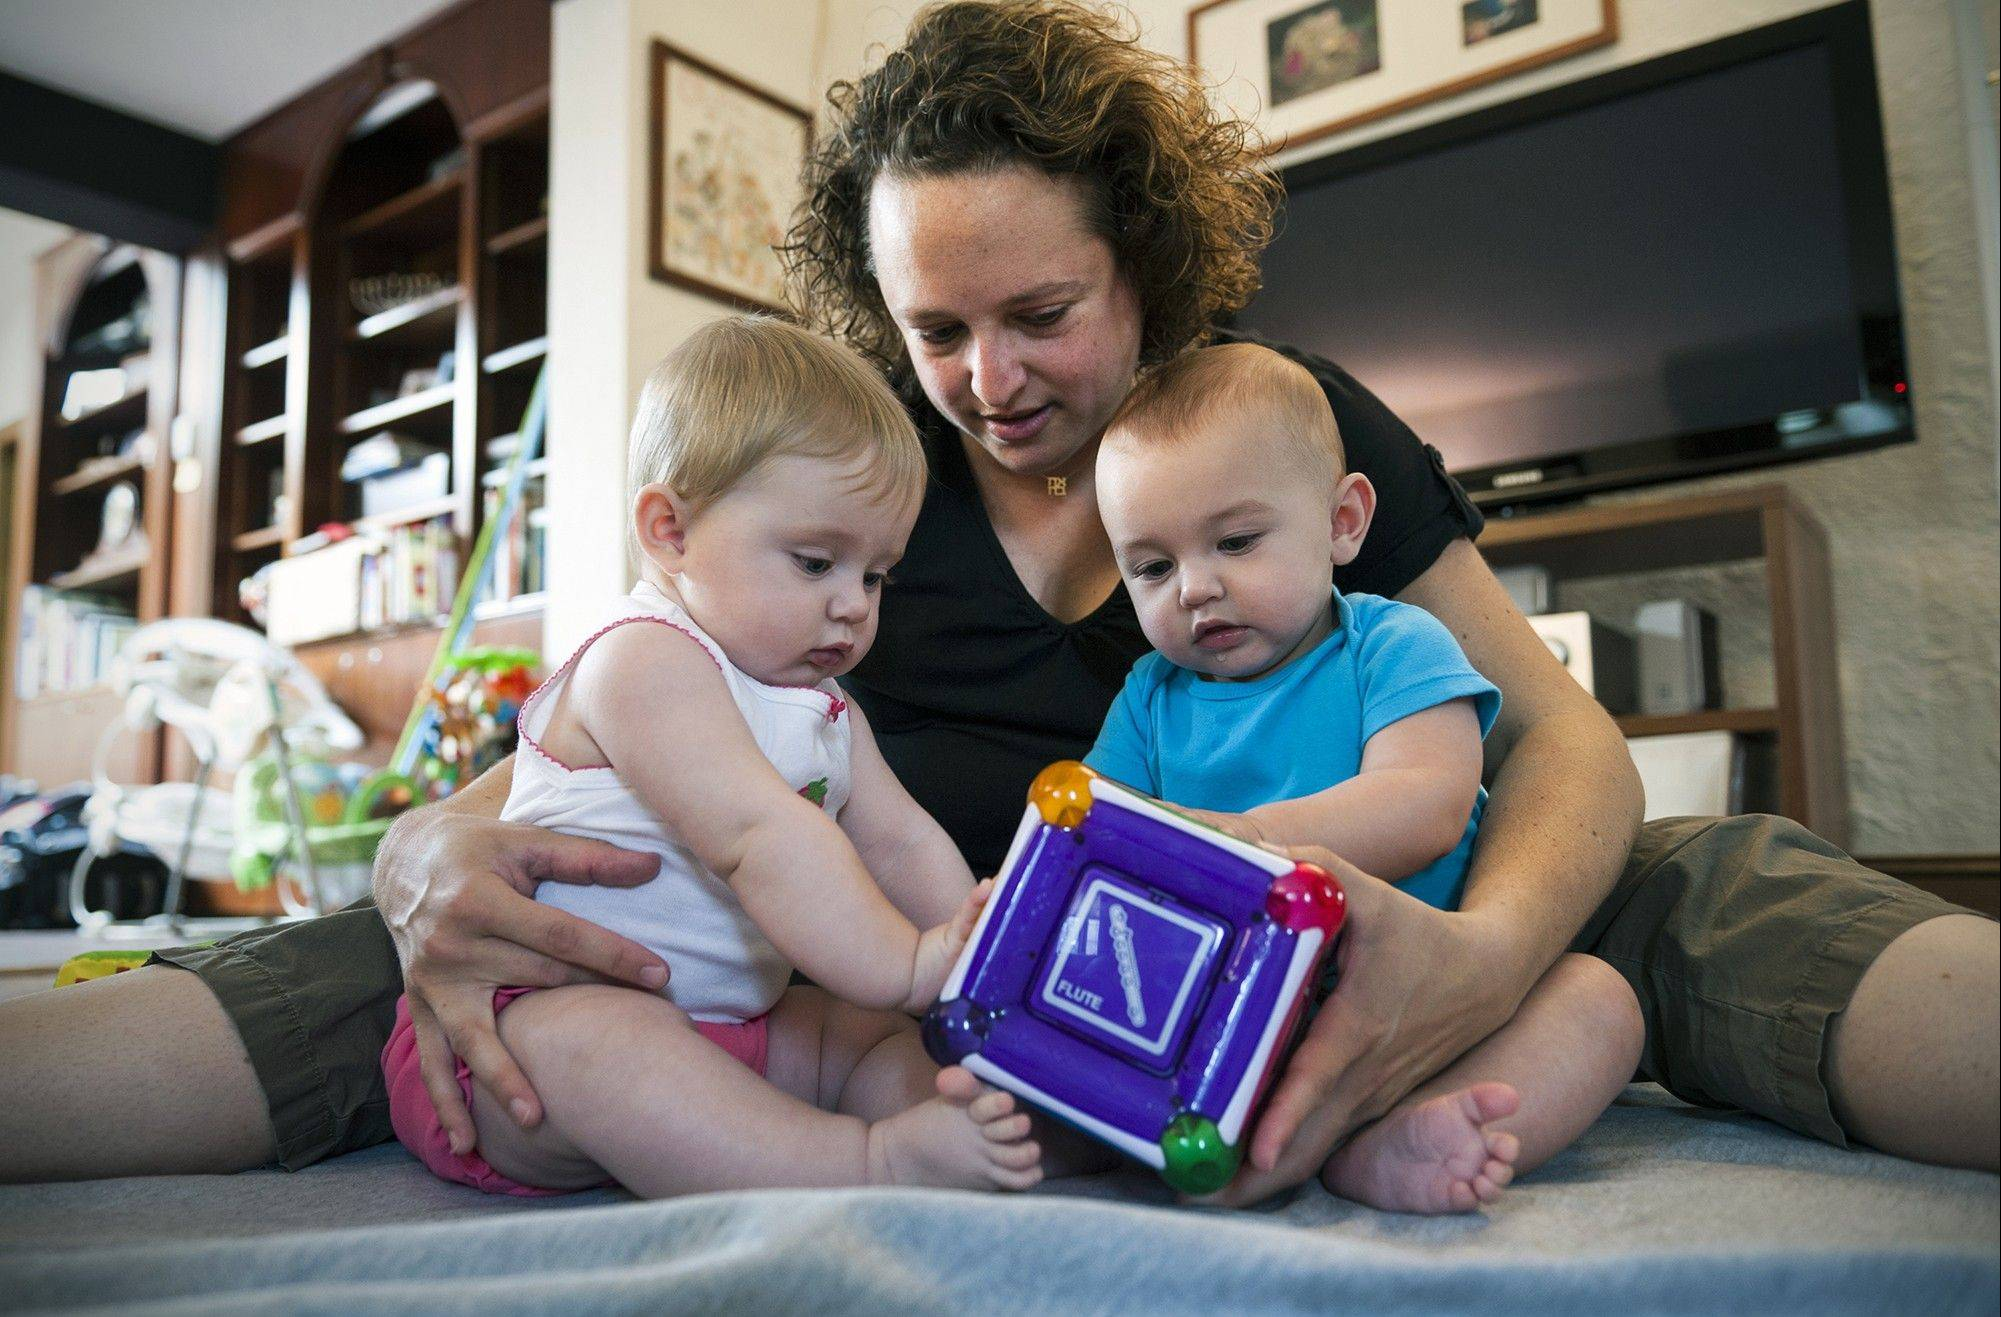 Ilana Brunner had her eggs frozen before her double mastectomy and again before chemotherapy. Neither step led to a pregnancy. But she later retrieved eggs that were fertilized with her husband's sperm, resulting in the birth of twins Lyla, left, and Aryeh.